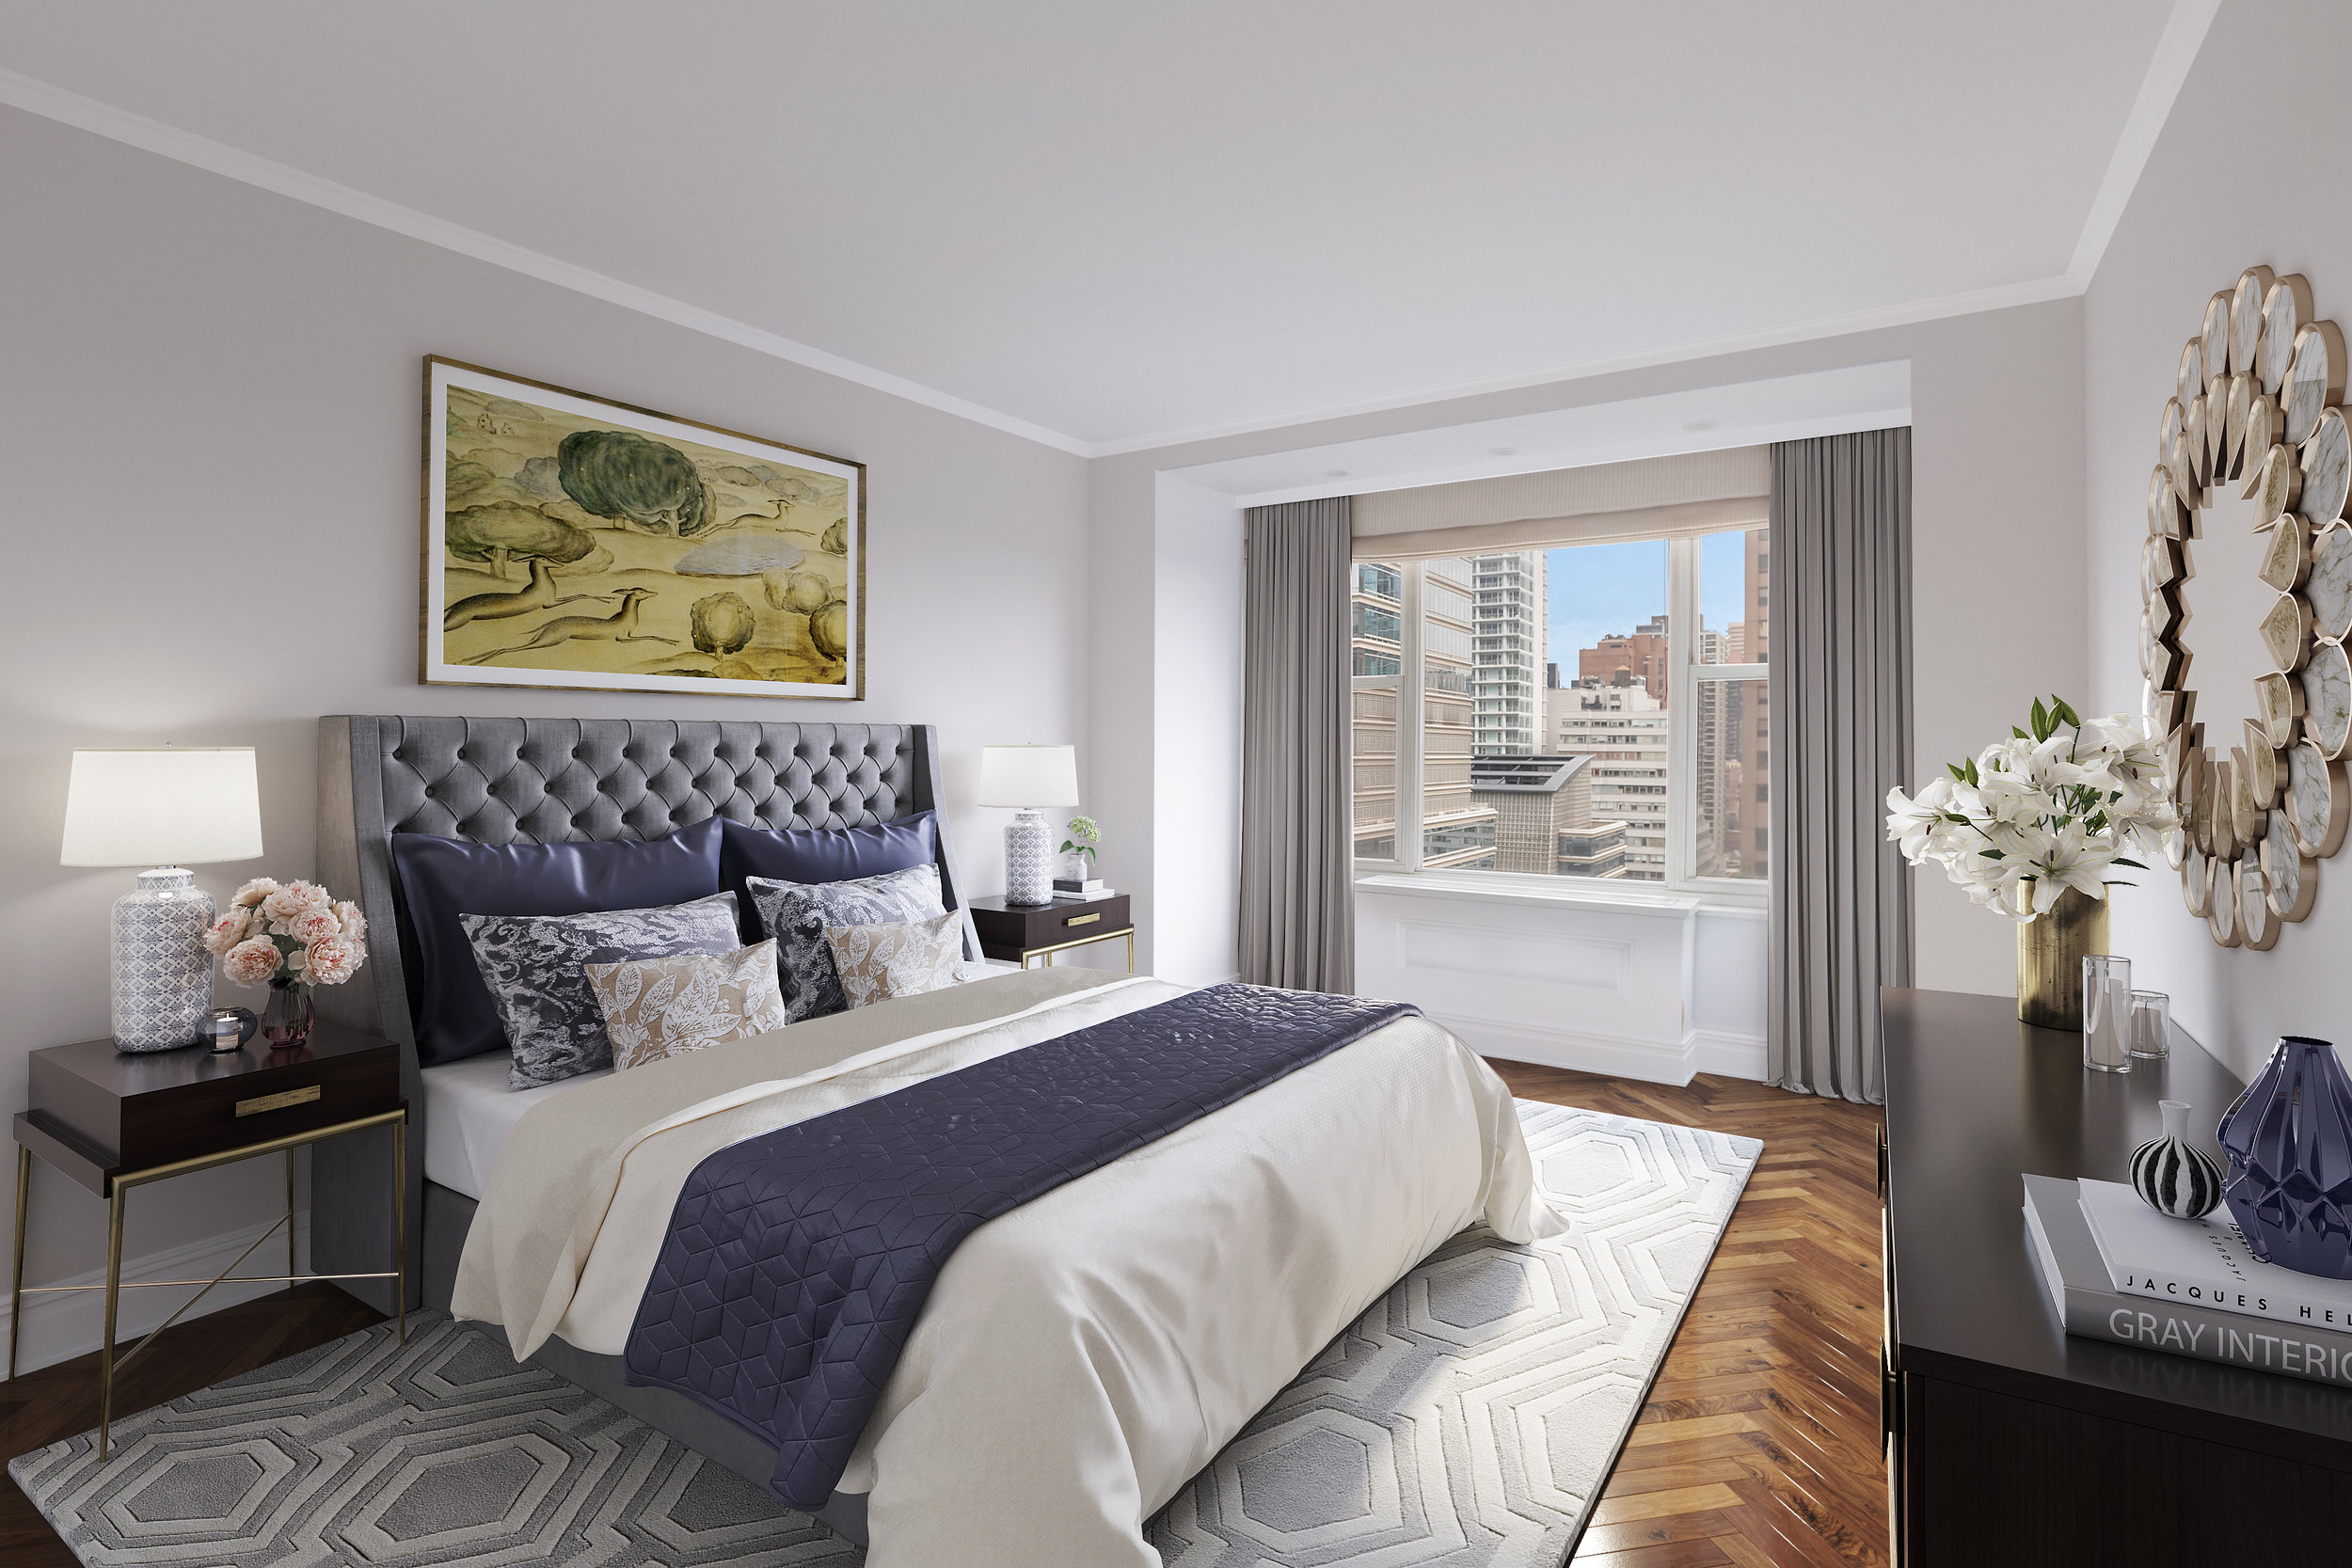 Andrew_117e57thst20a_Second_bedroom_TK.jpg